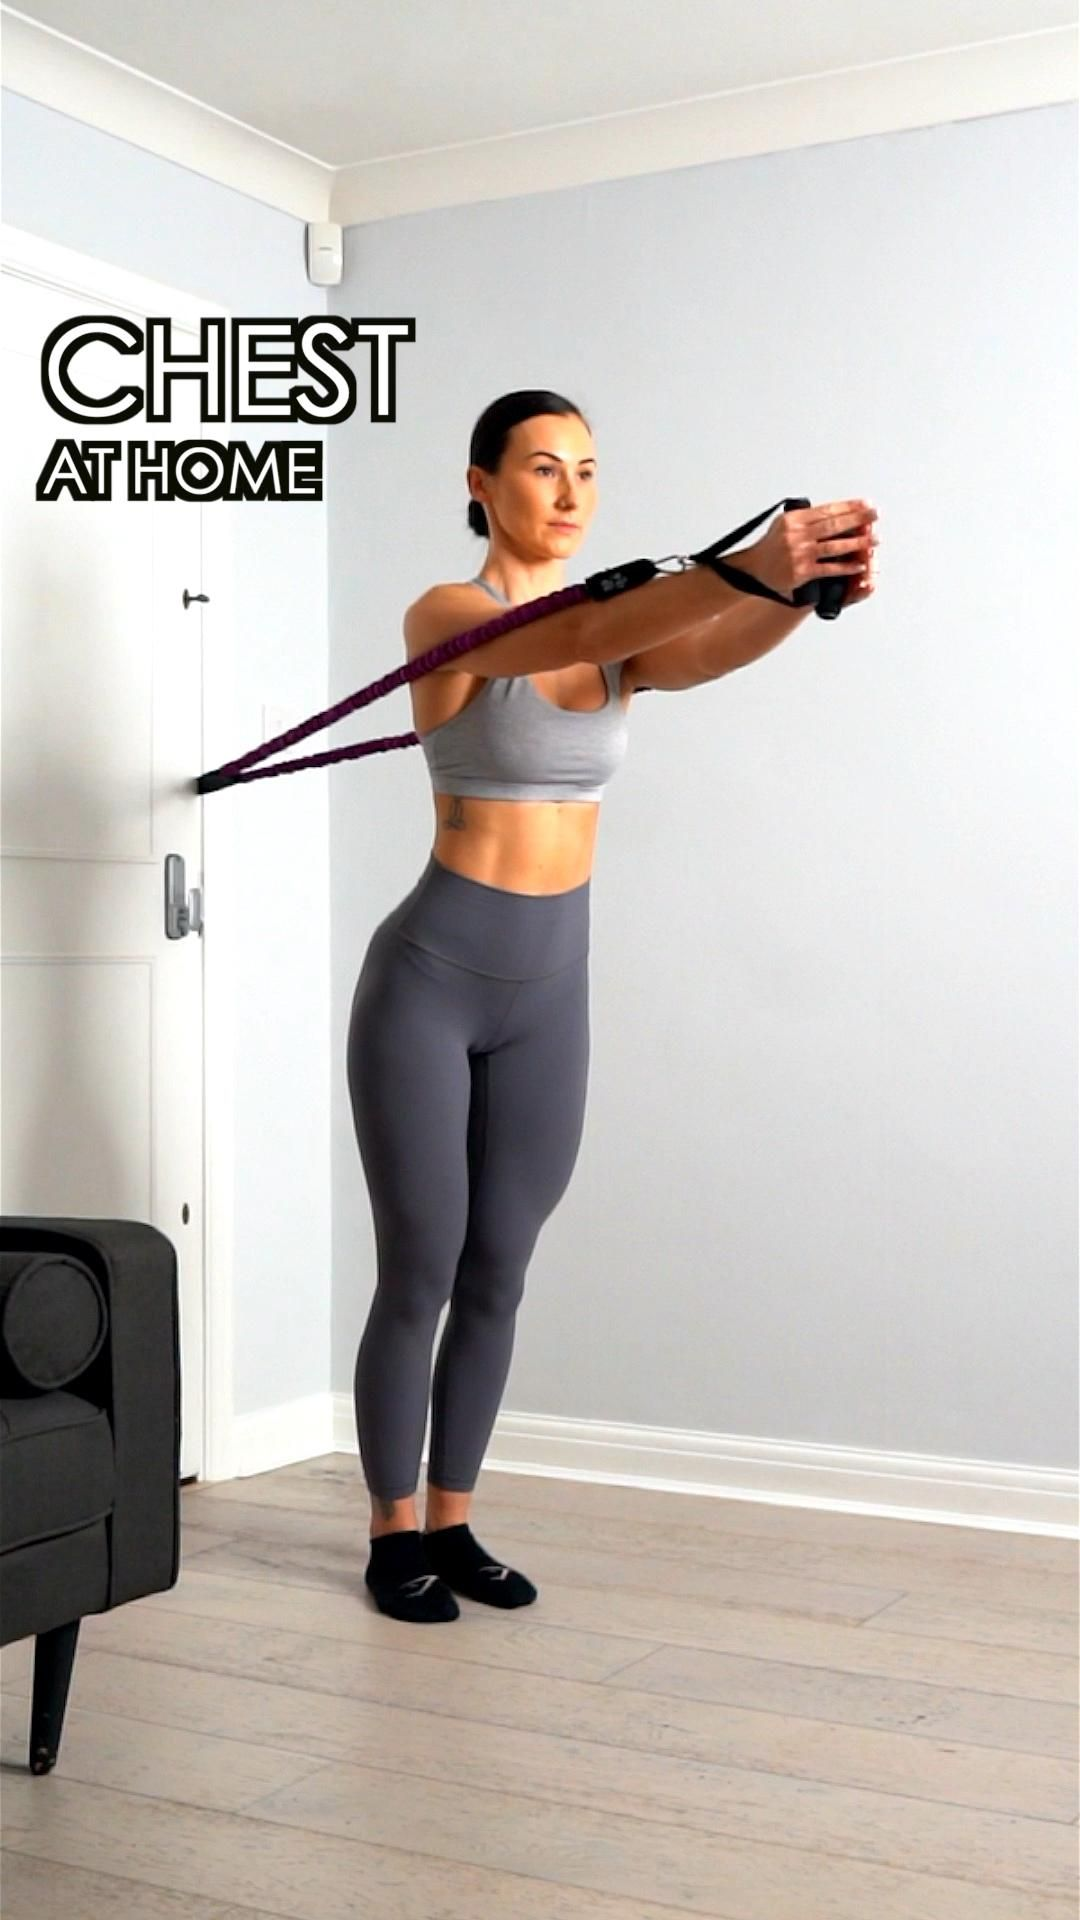 Chest workout at home with resistance bands